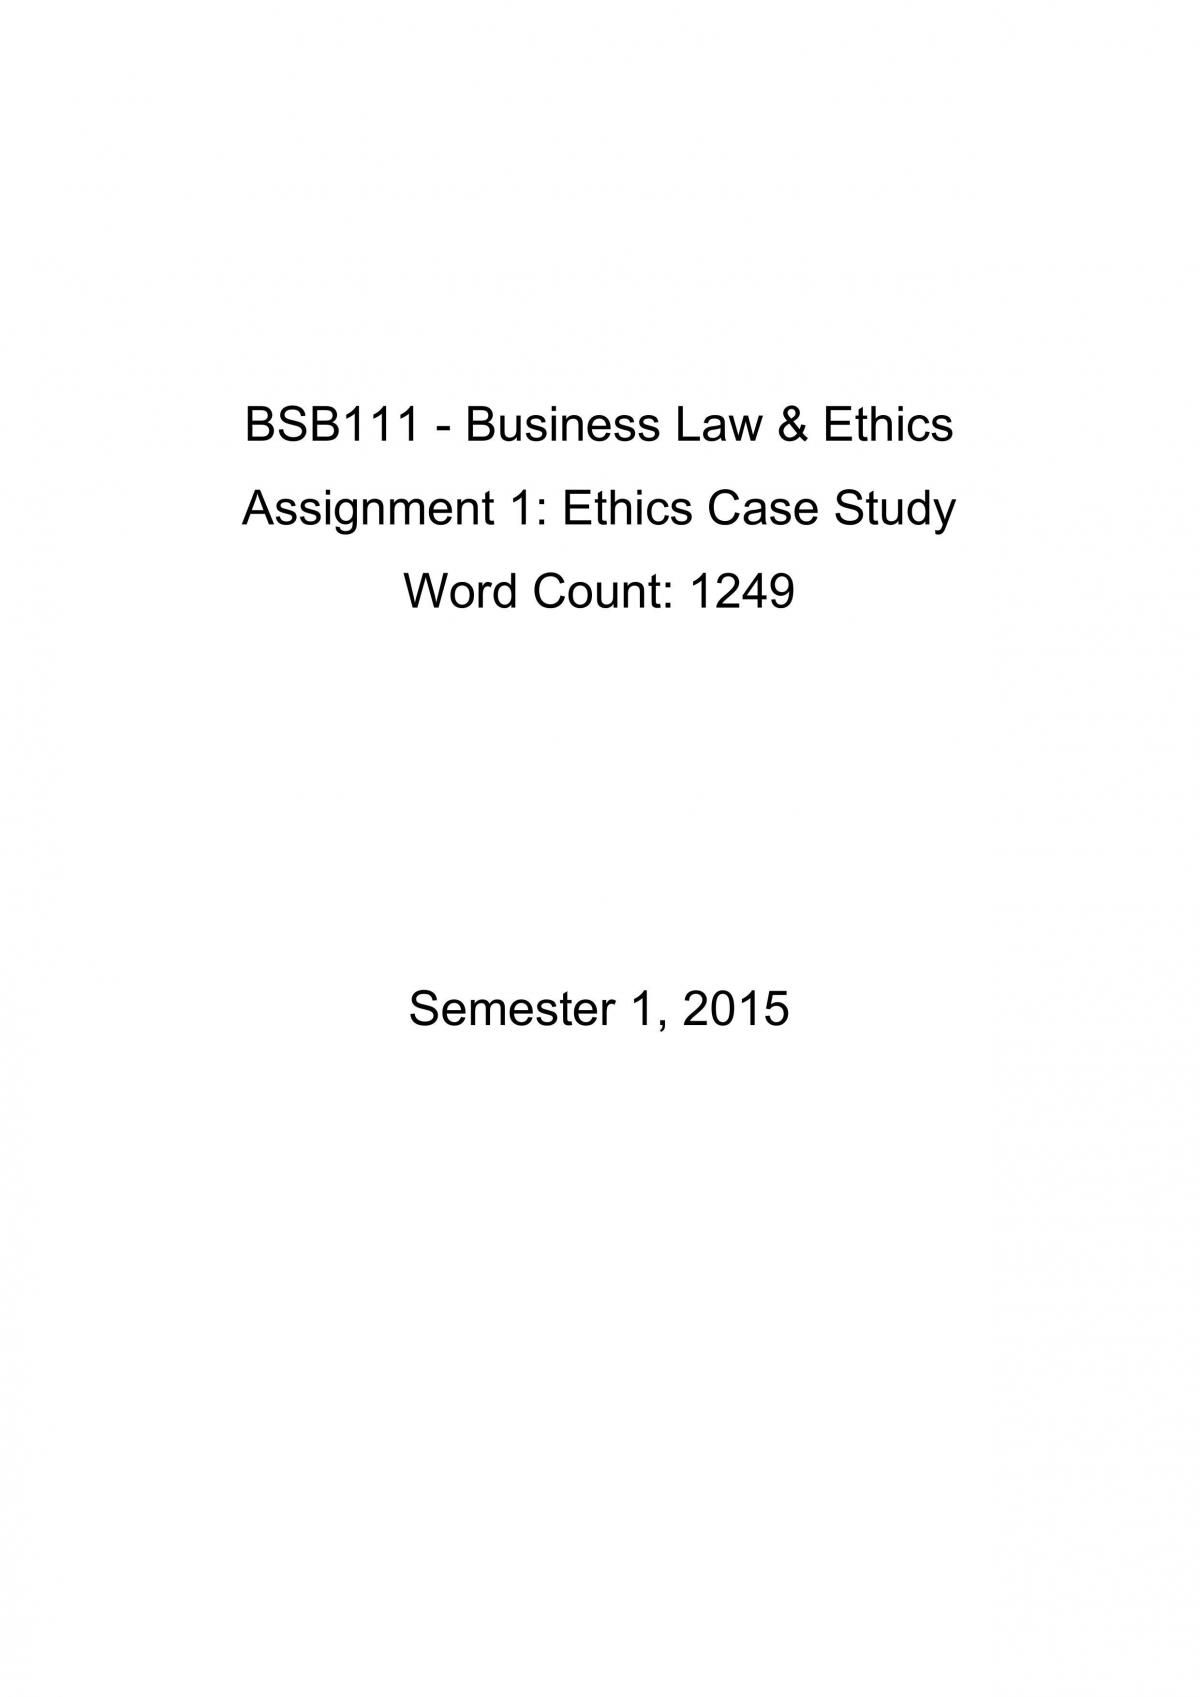 Ethics Case Study - Page 1